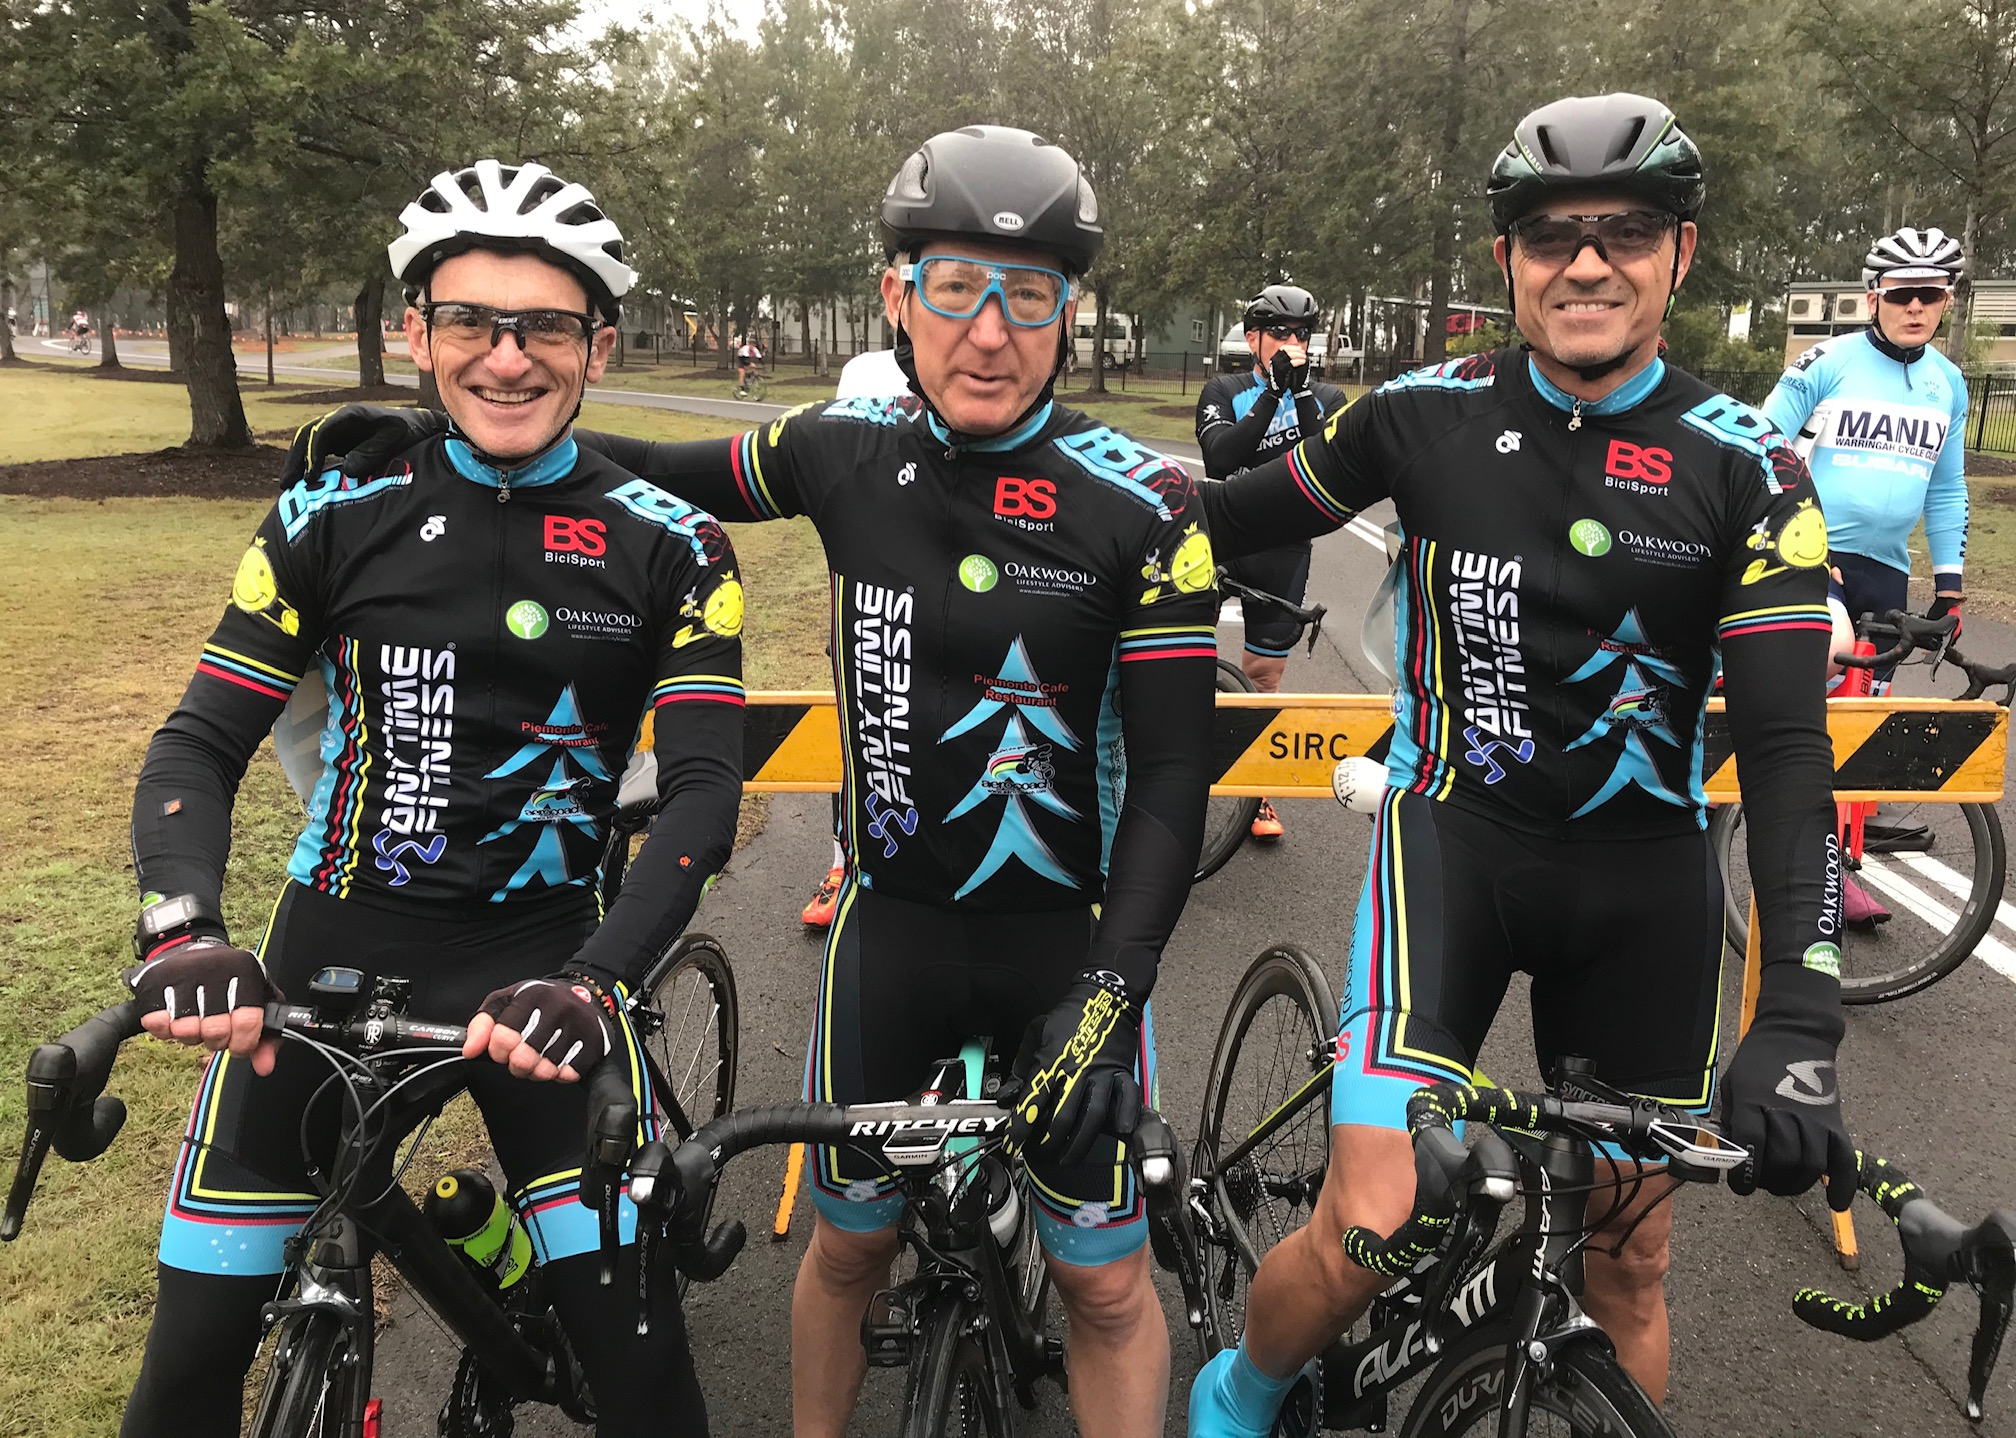 Metropolitan Championships @ Penrith Lakes @ 6 July - M6 category start with (L to R) Eric Dole, Graham Cockerton & Dom Zumbo